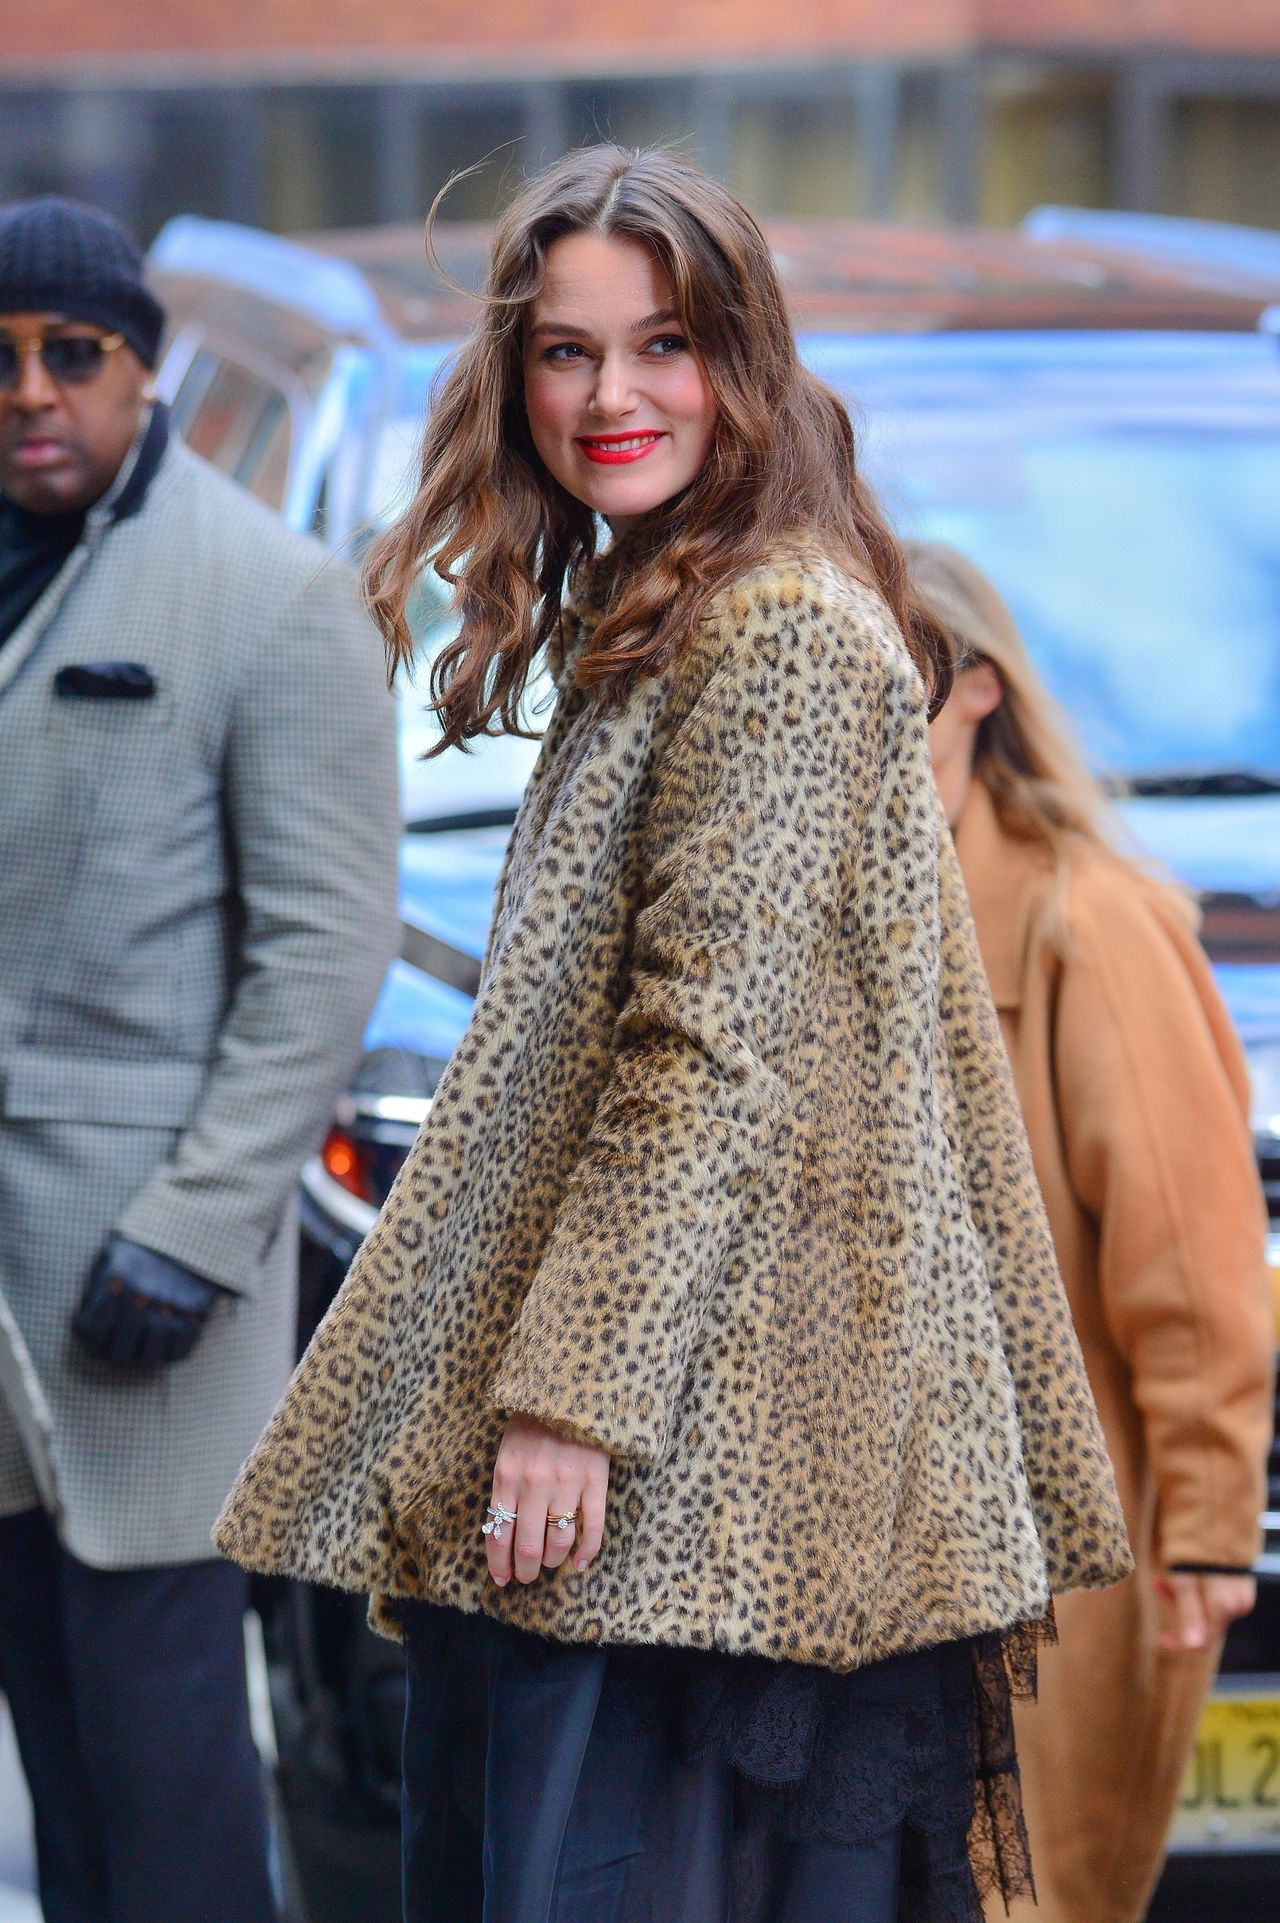 Keira Knightley is all smiles as she arrives to AOL Build Keira Knightley